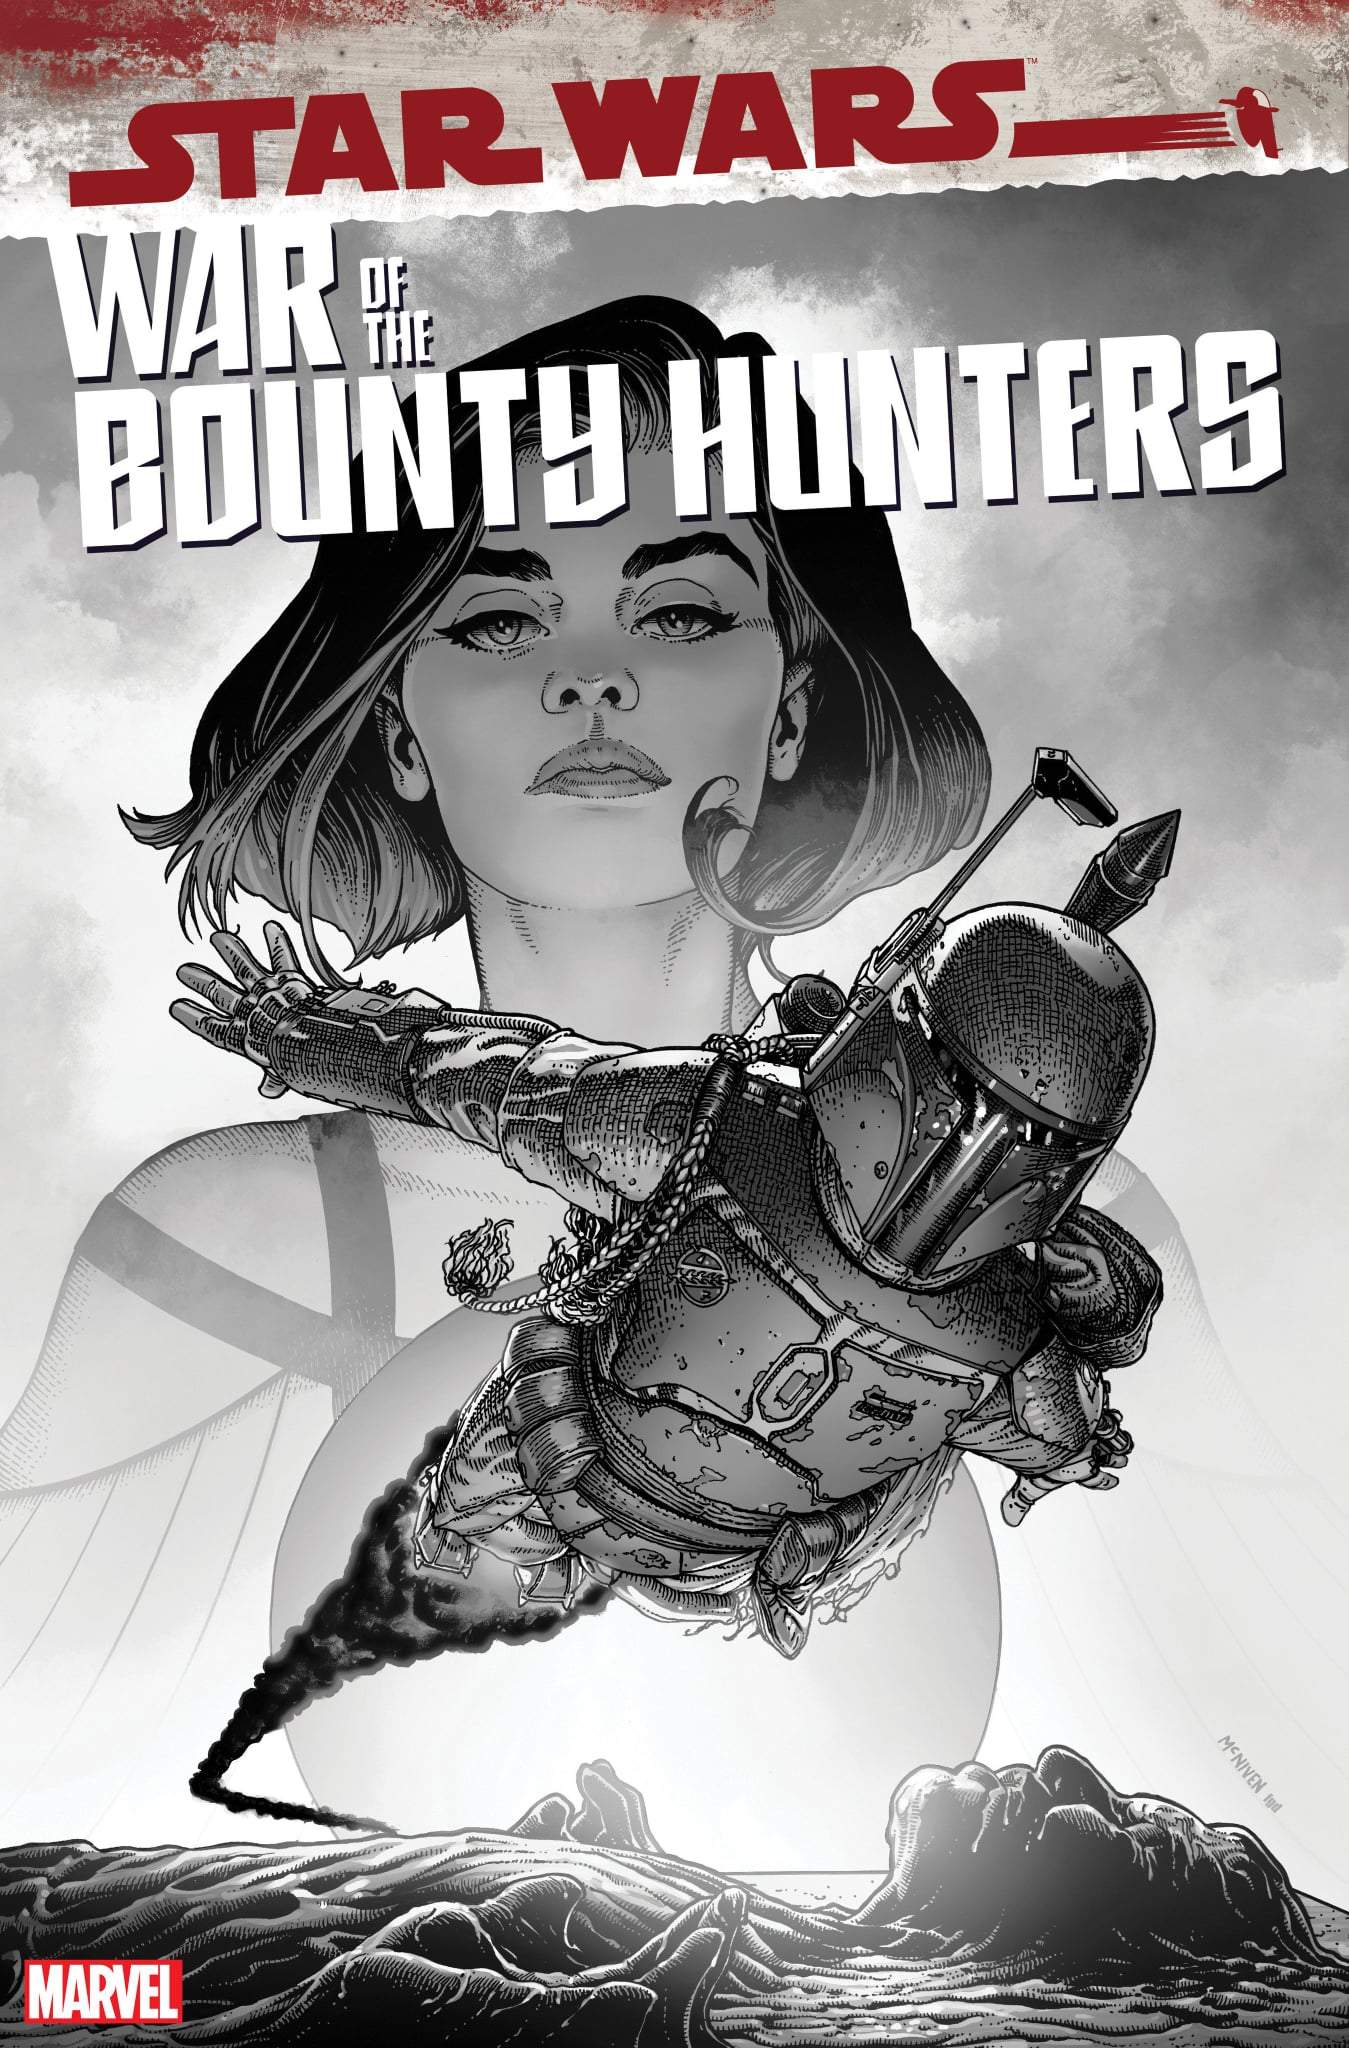 Star Wars: War of the Bounty Hunters 5 - Carbonite Variant